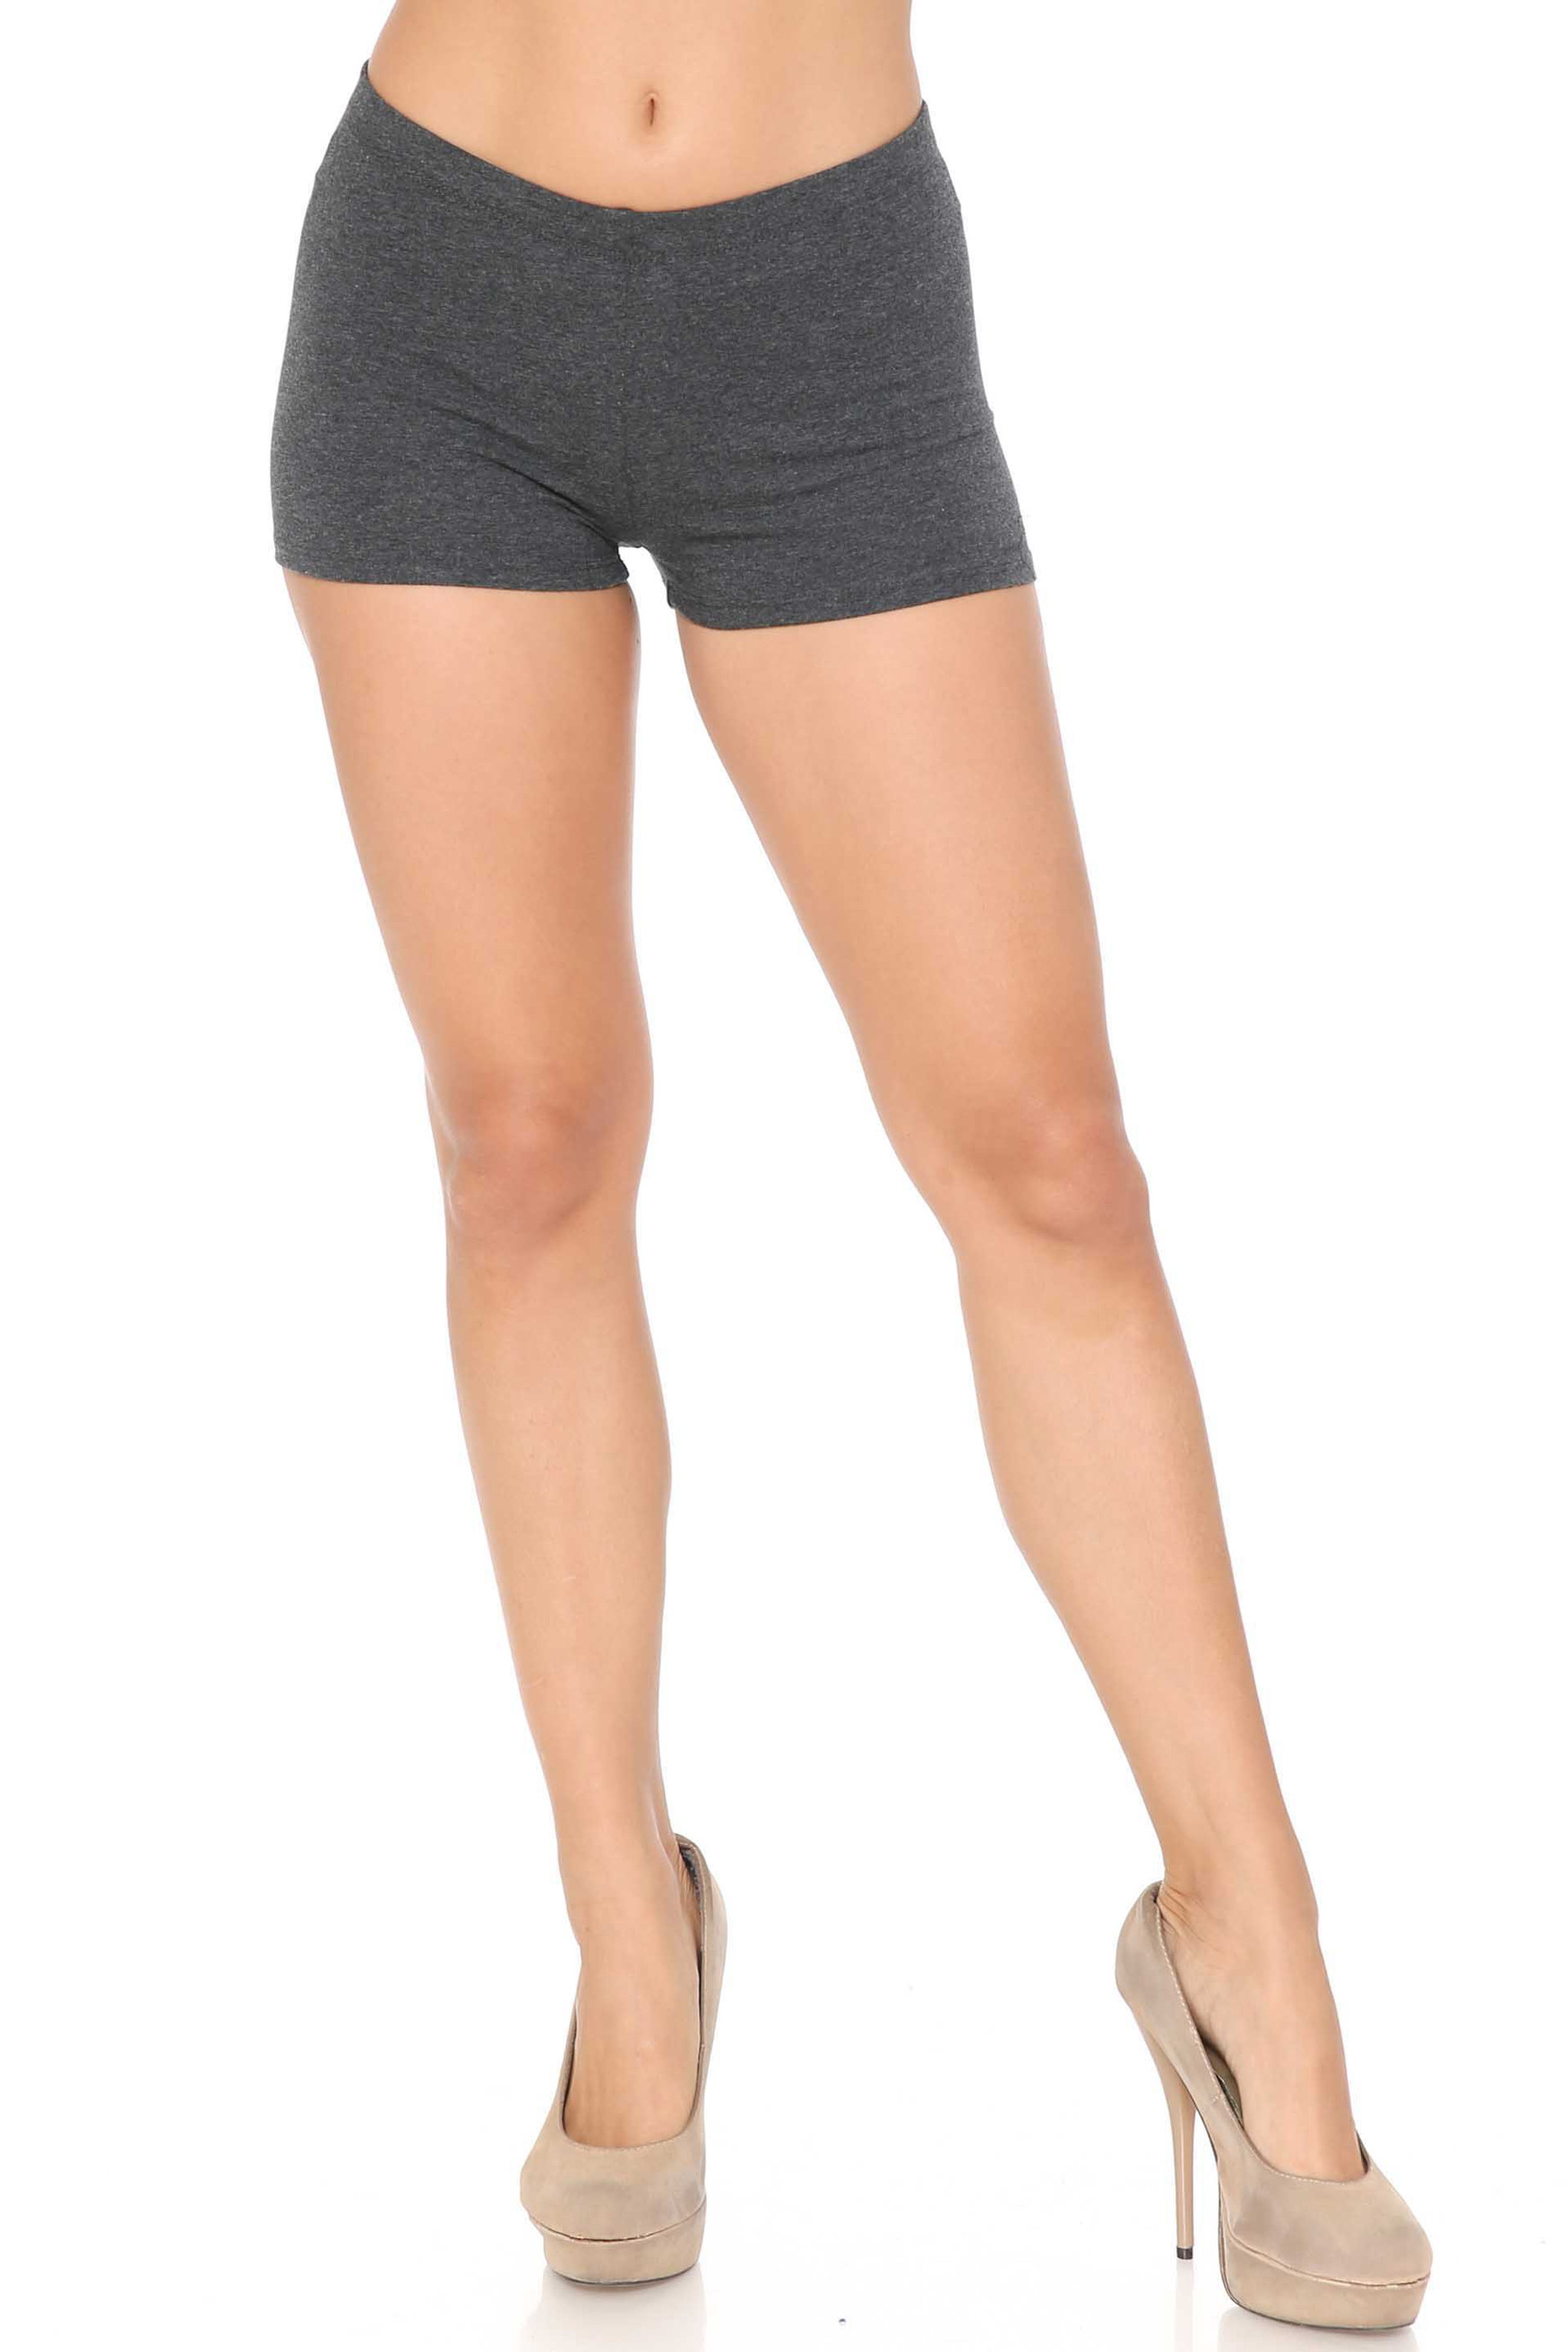 Front view of Charcoal USA Cotton Boy Shorts